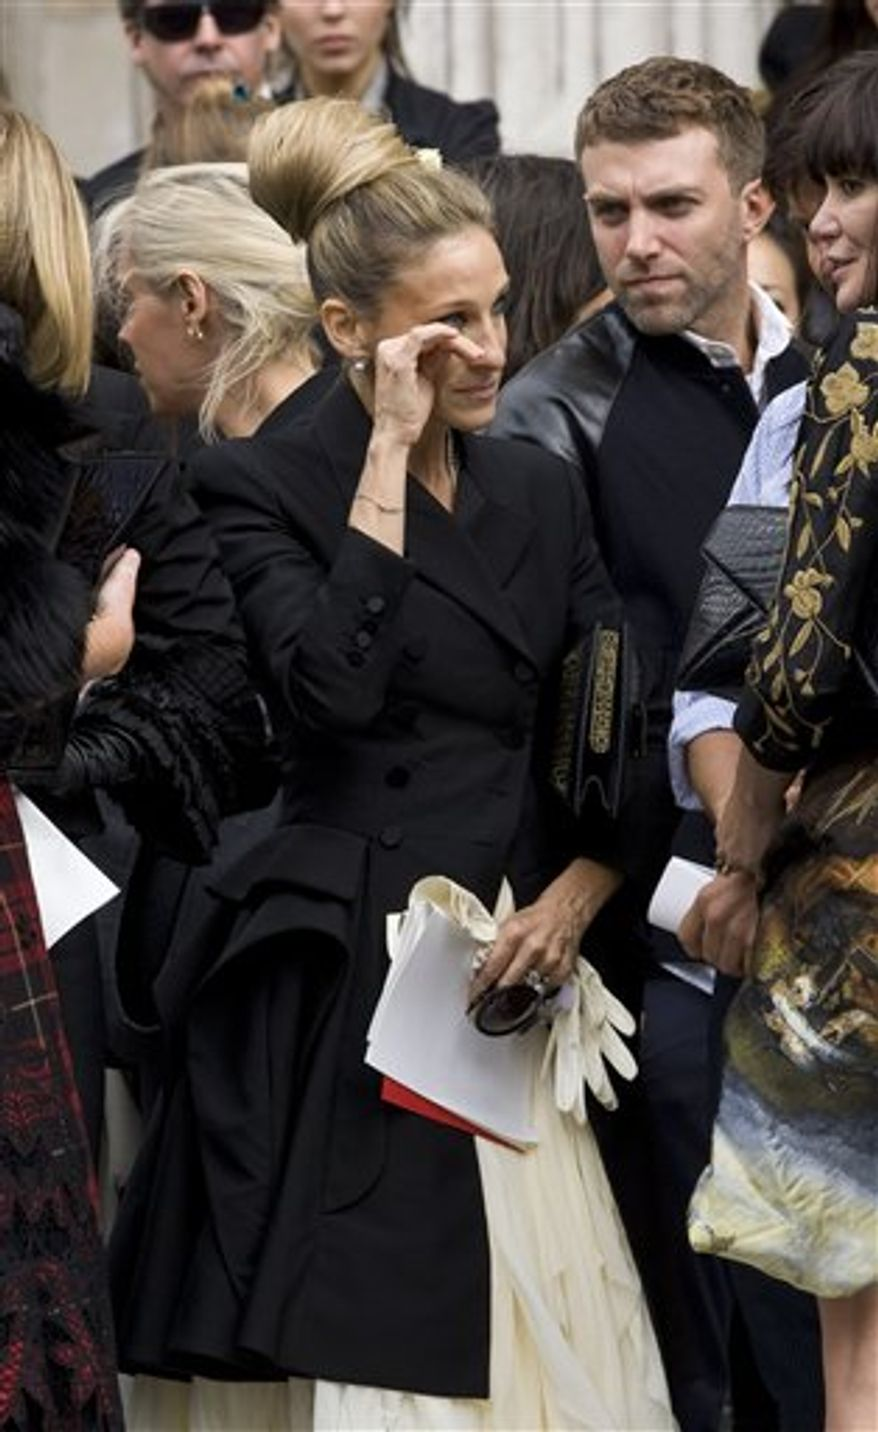 Daphne Guinness trips on the cobbled streets as she arrives to attend the Alexander McQueen memorial service at St Paul's Cathedral in London Monday, Sept. 20, 2010, which takes place during London Fashion Week. (AP Photo/Joel Ryan)